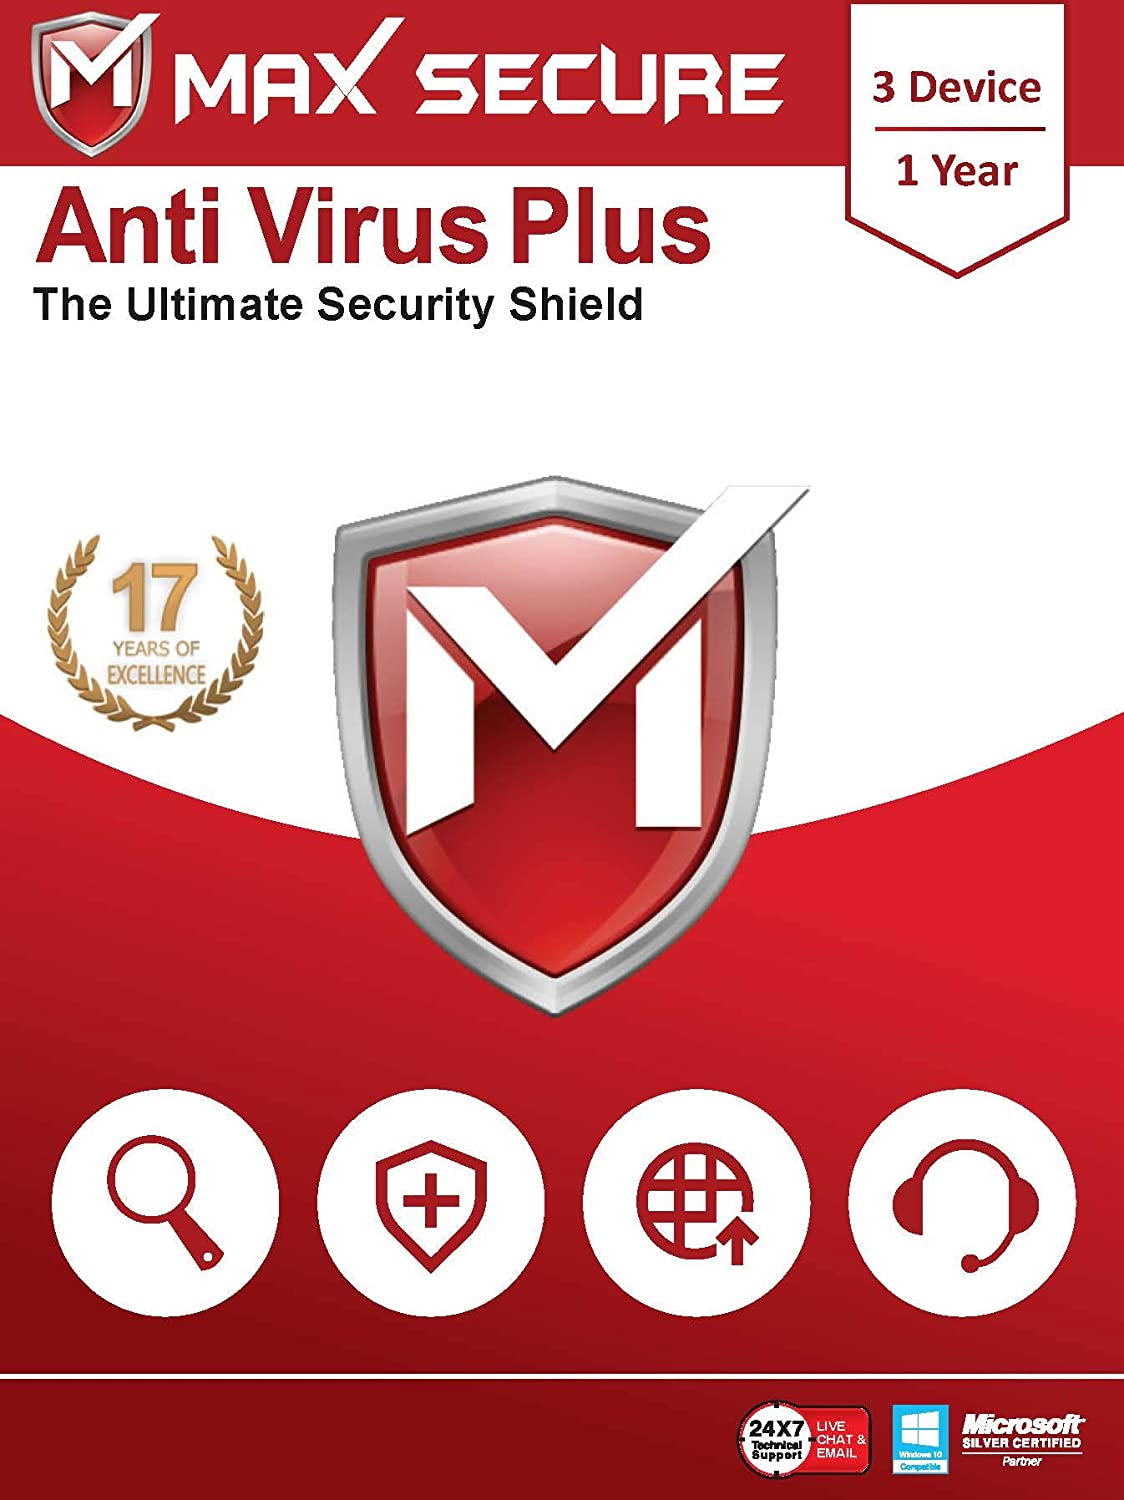 Max Secure Software Antivirus Plus for PC 2019 | 3 Device | 1 Year (Activation Key Card)